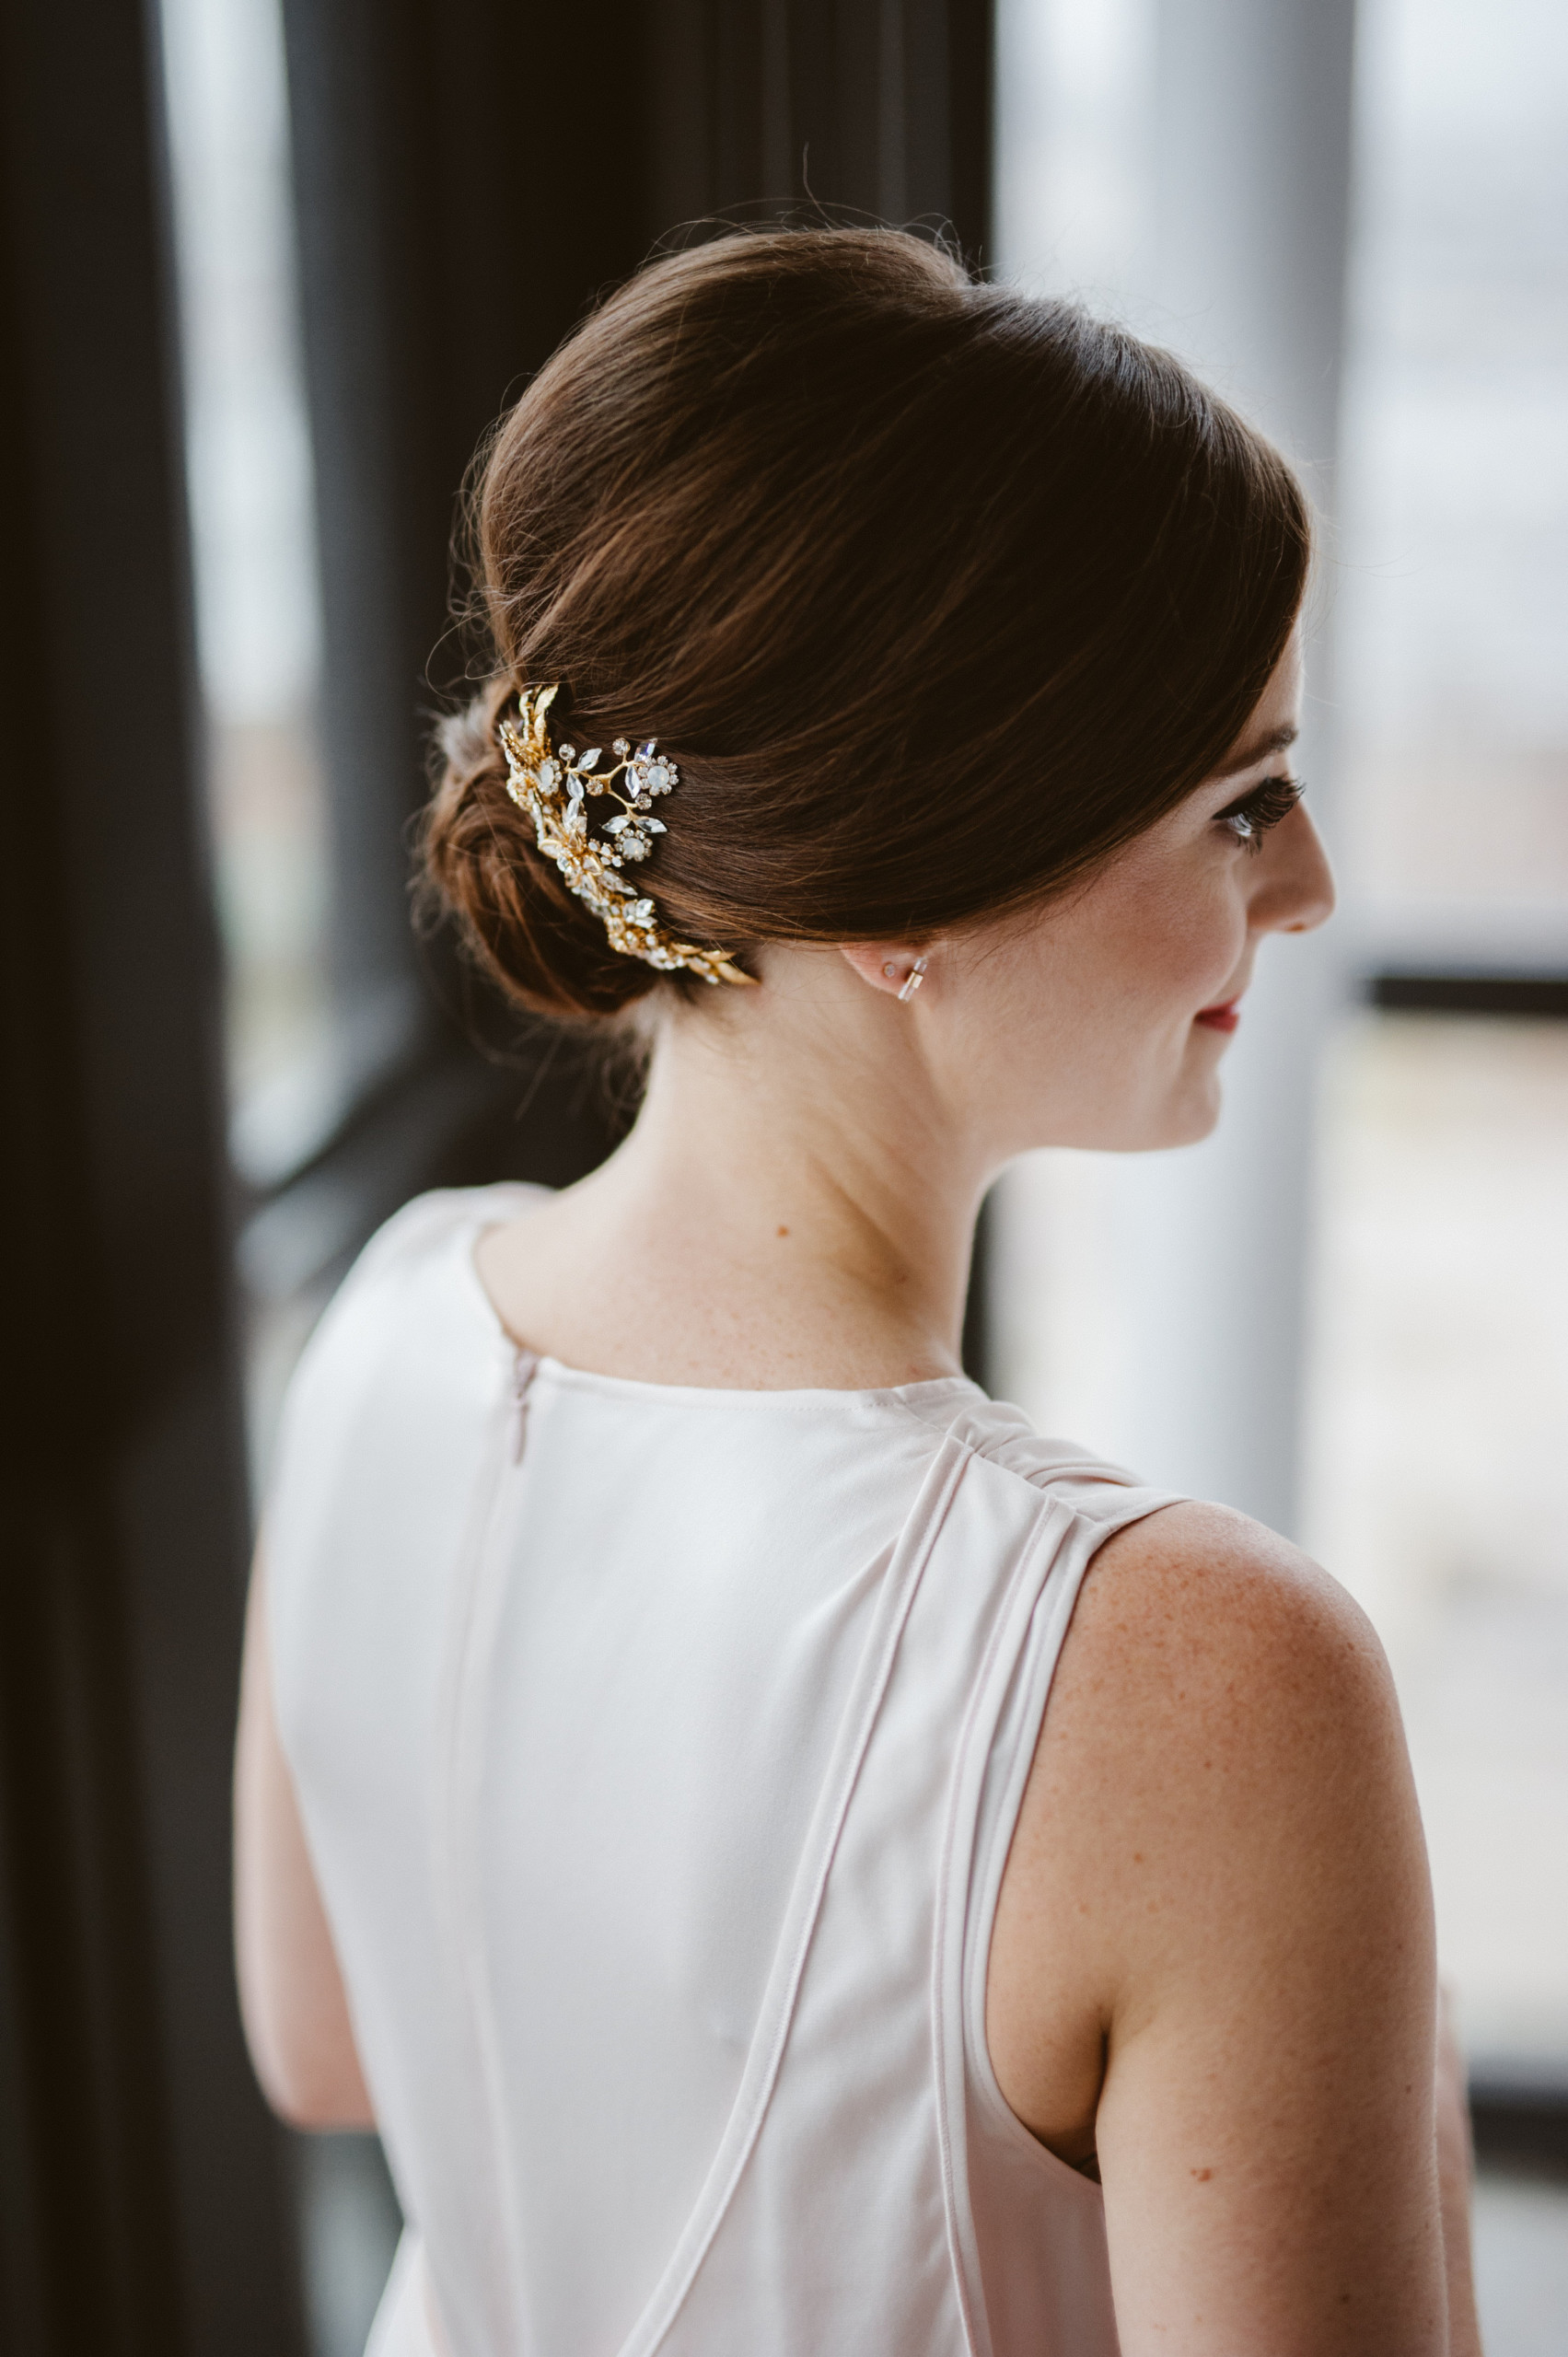 Bride with auburn hair styled into modern classic chignon with modern hair accessory, pictured at the Wythe Hotel in Williamsburg, Brooklyn